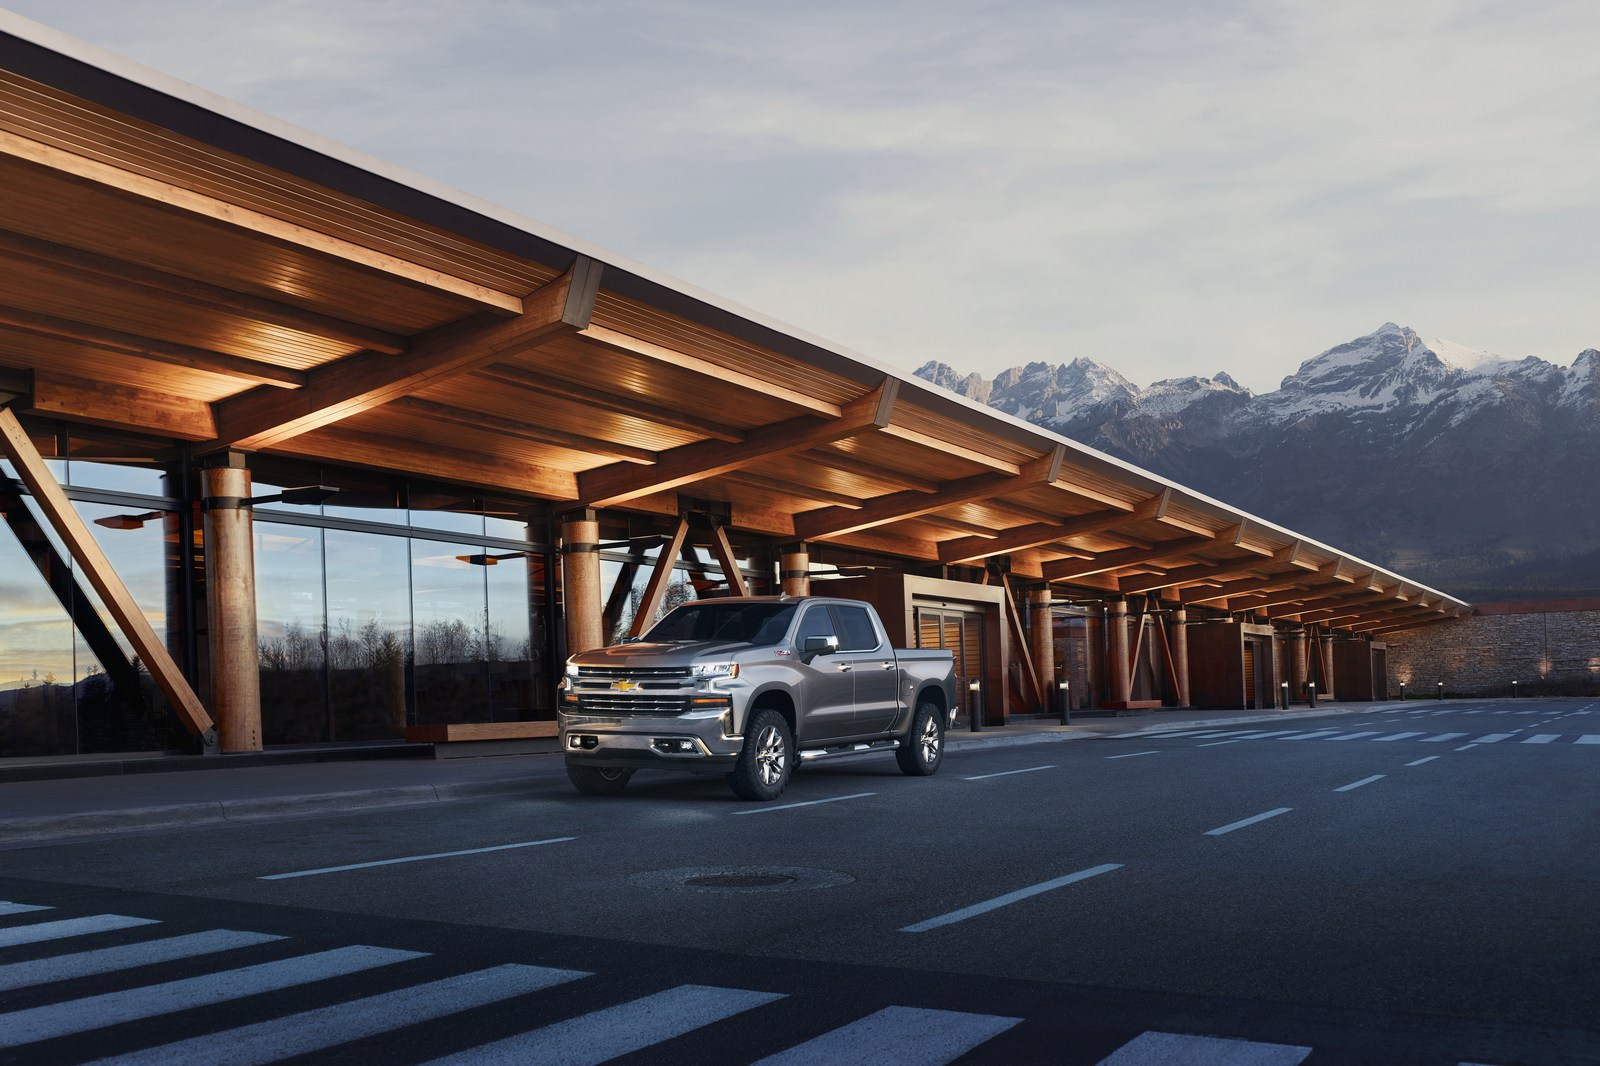 The all-new 2019 Silverado LTZ features chrome accents on the bumpers, front grille, mirror caps, door handles and hockey-stick beltline as well as power folding and heated outside rearview mirrors. Leather interior trim is standard equipment.